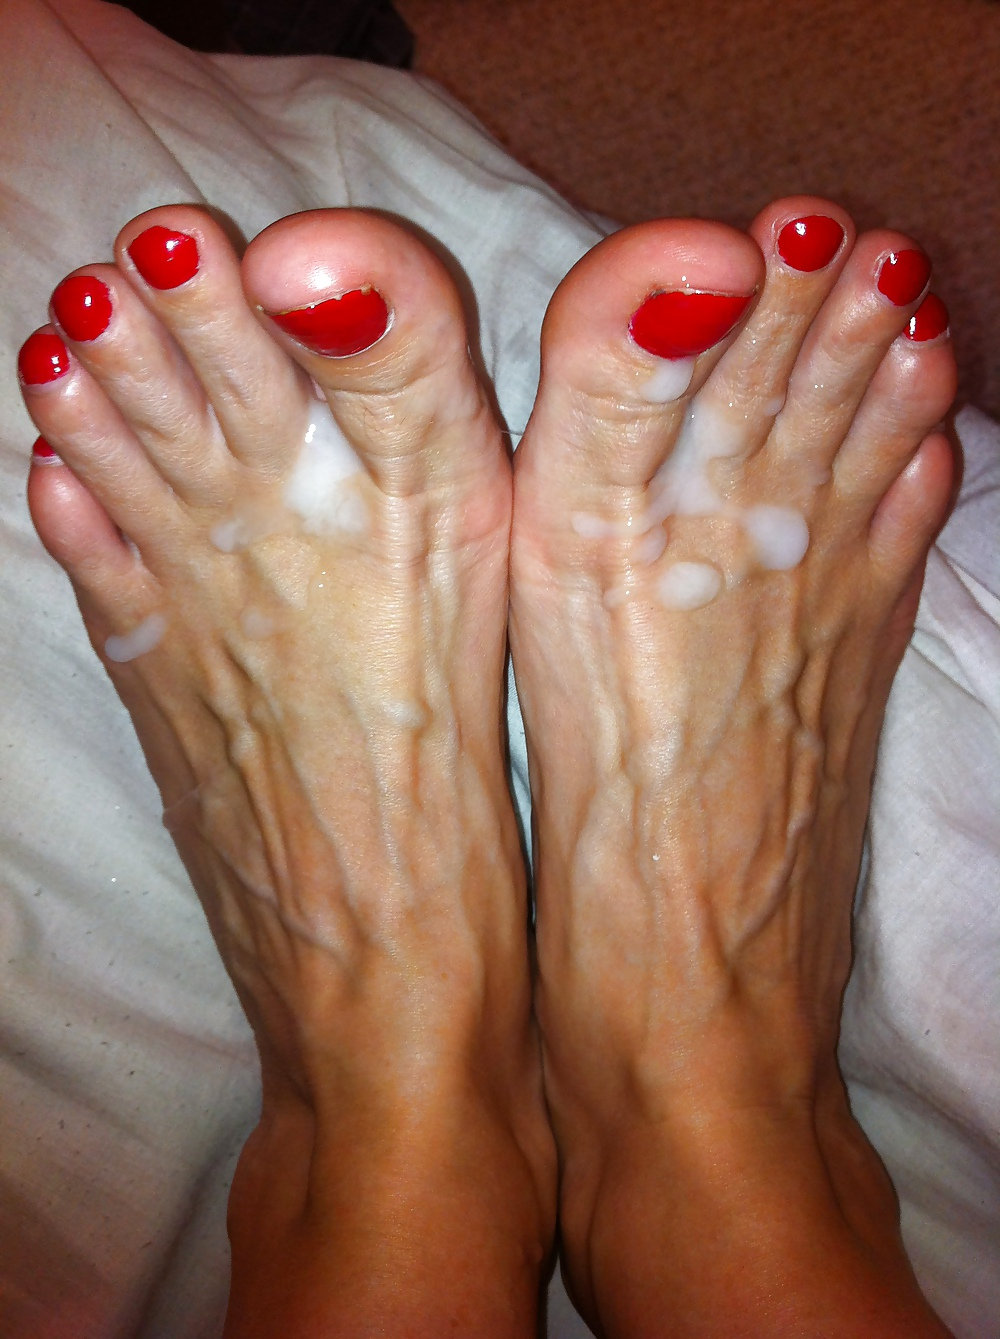 My Hot Cum Over Her Sexy Feet - 4 Pics  Xhamster-8998